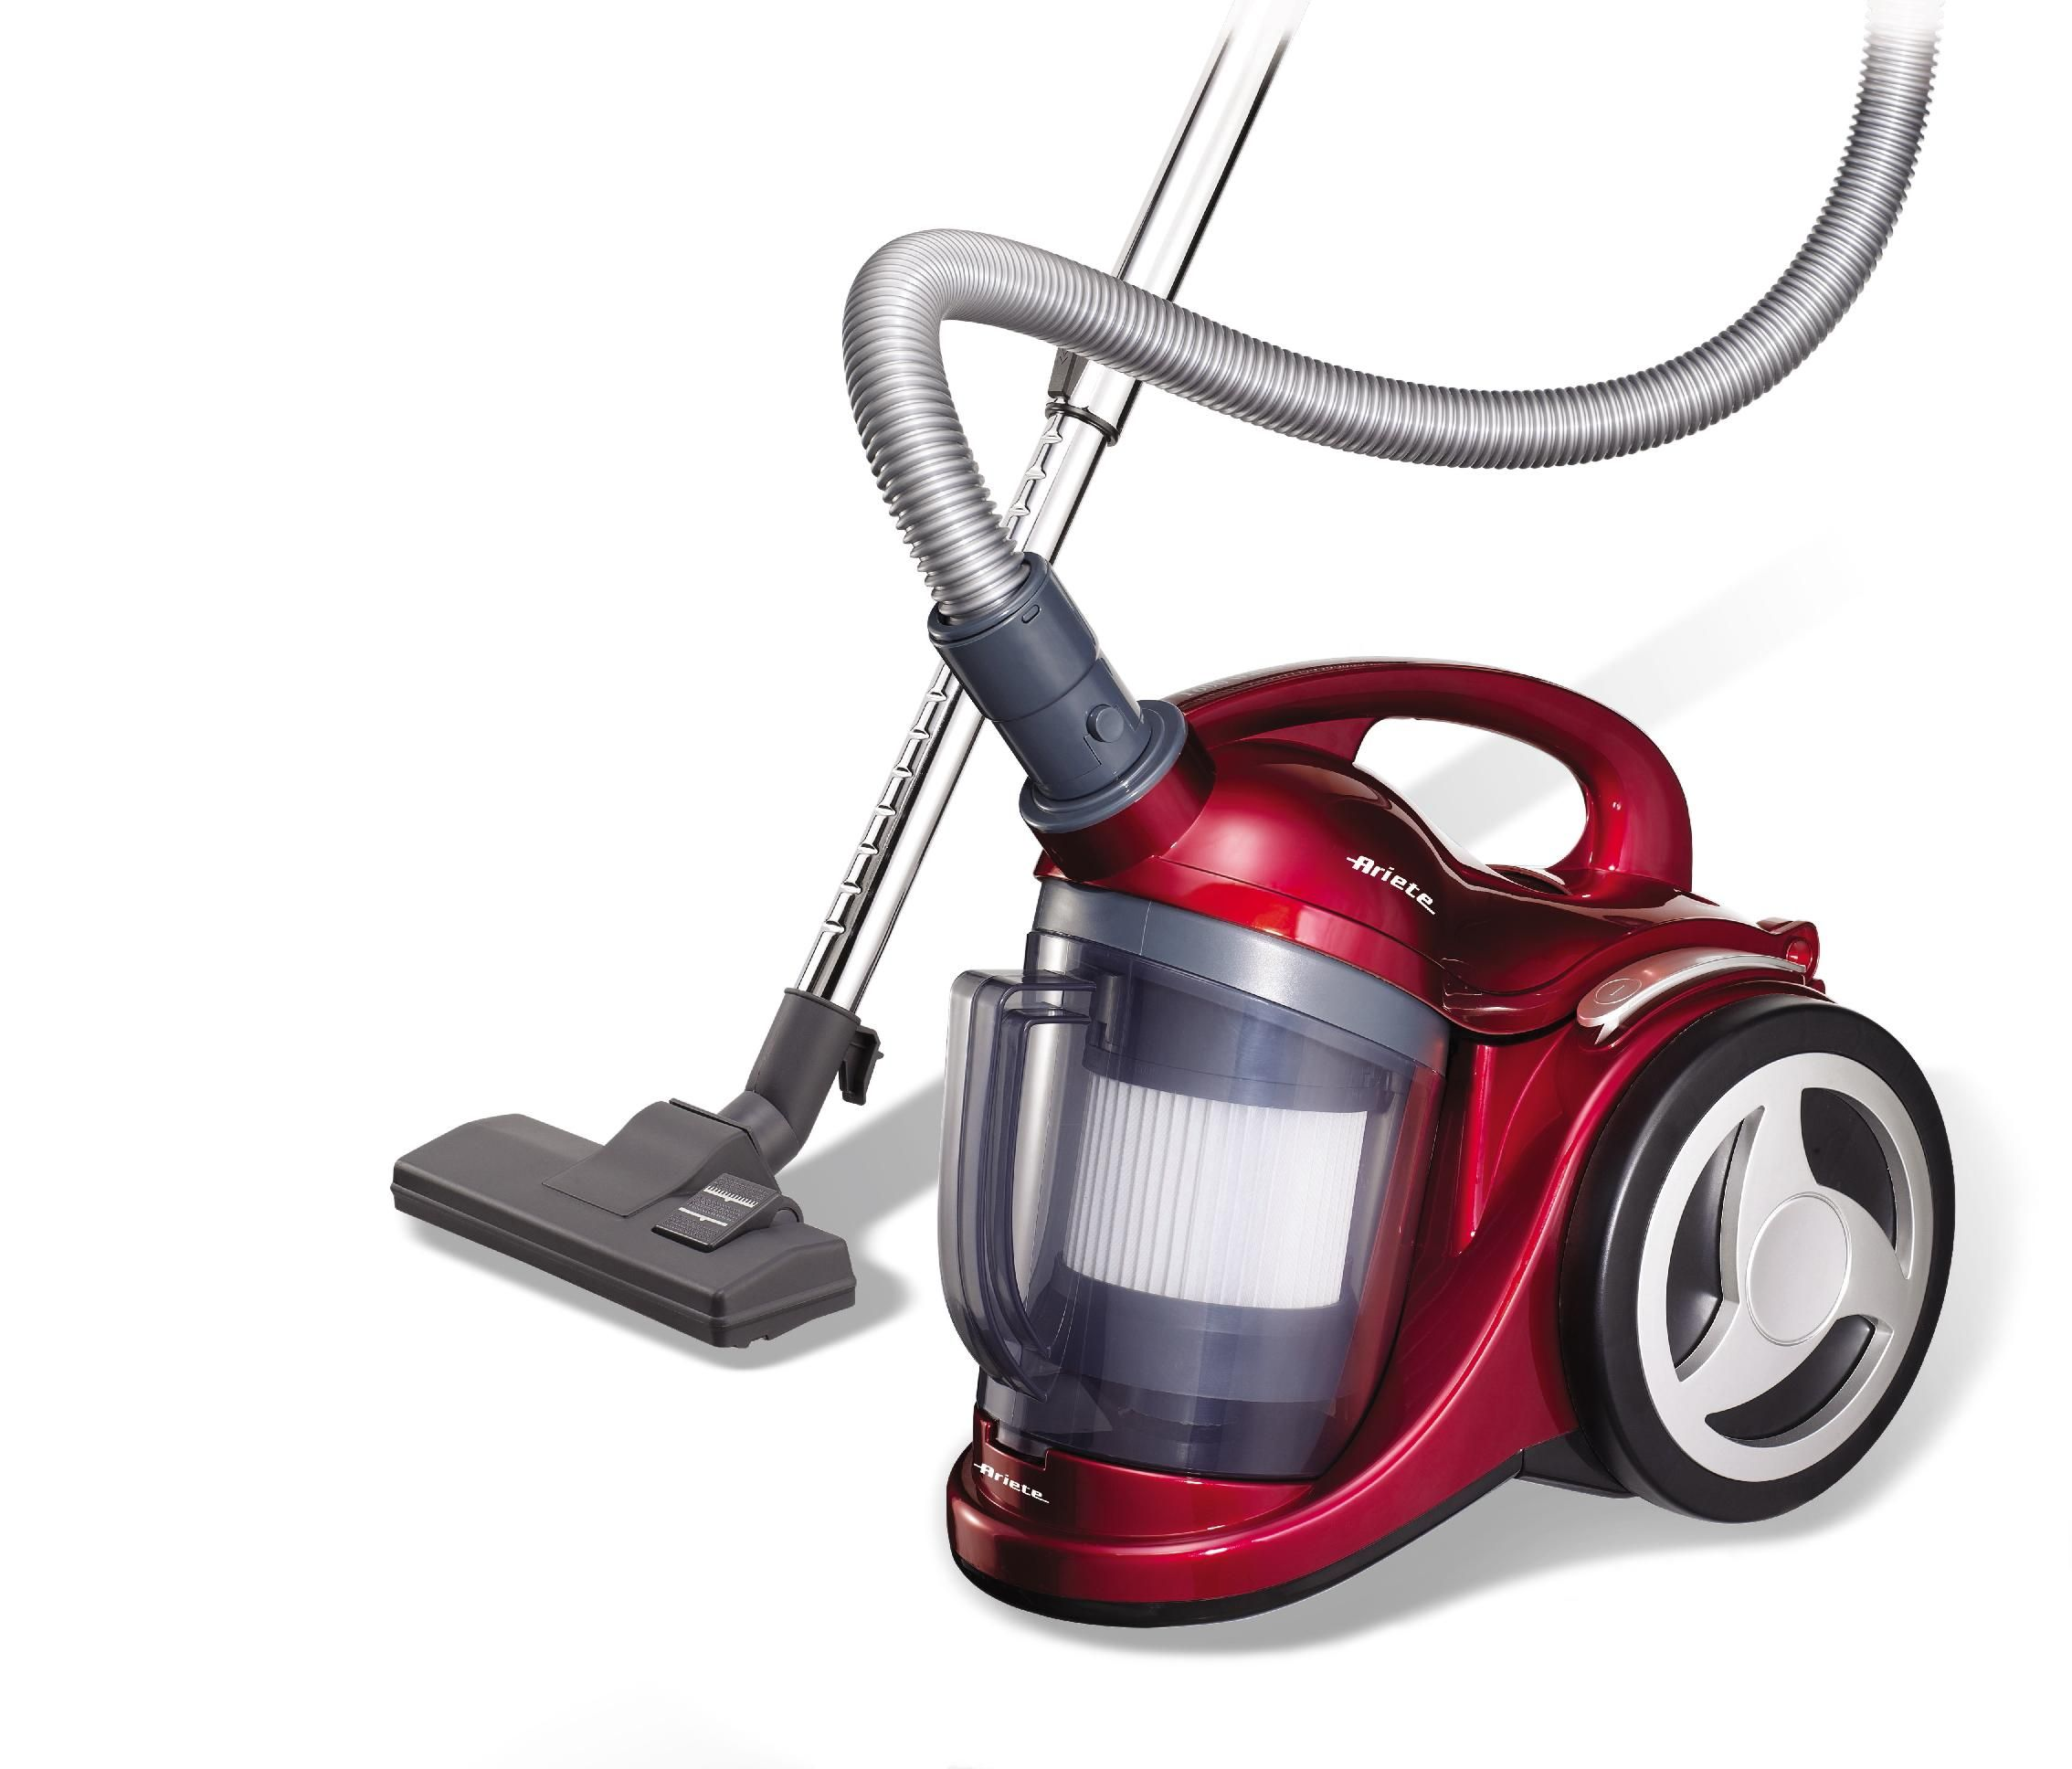 Best canister vacuum for carpet and hardwood floors for Best vacuum cleaner for concrete floors